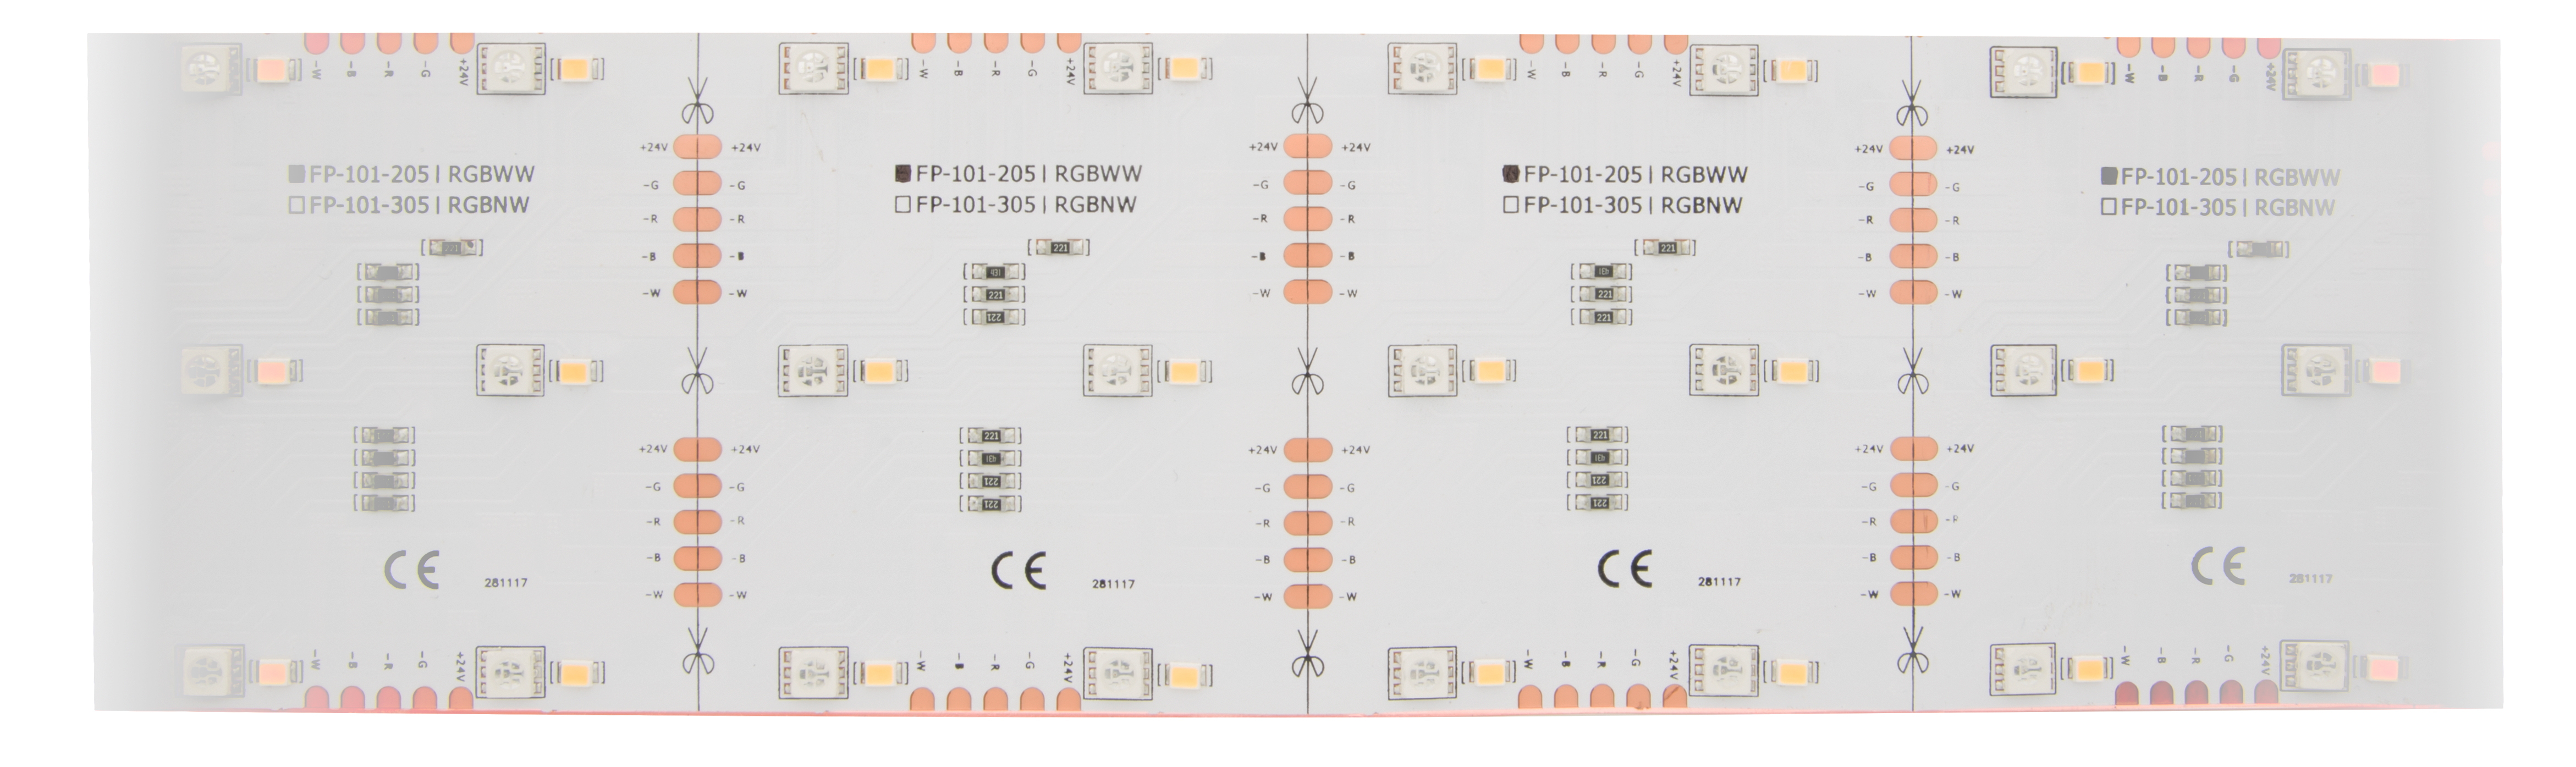 1 Stk LED Flexboard 14 RGB WW (Warm Weiss) - IP20, CRI/RA 90+ LIFP102205